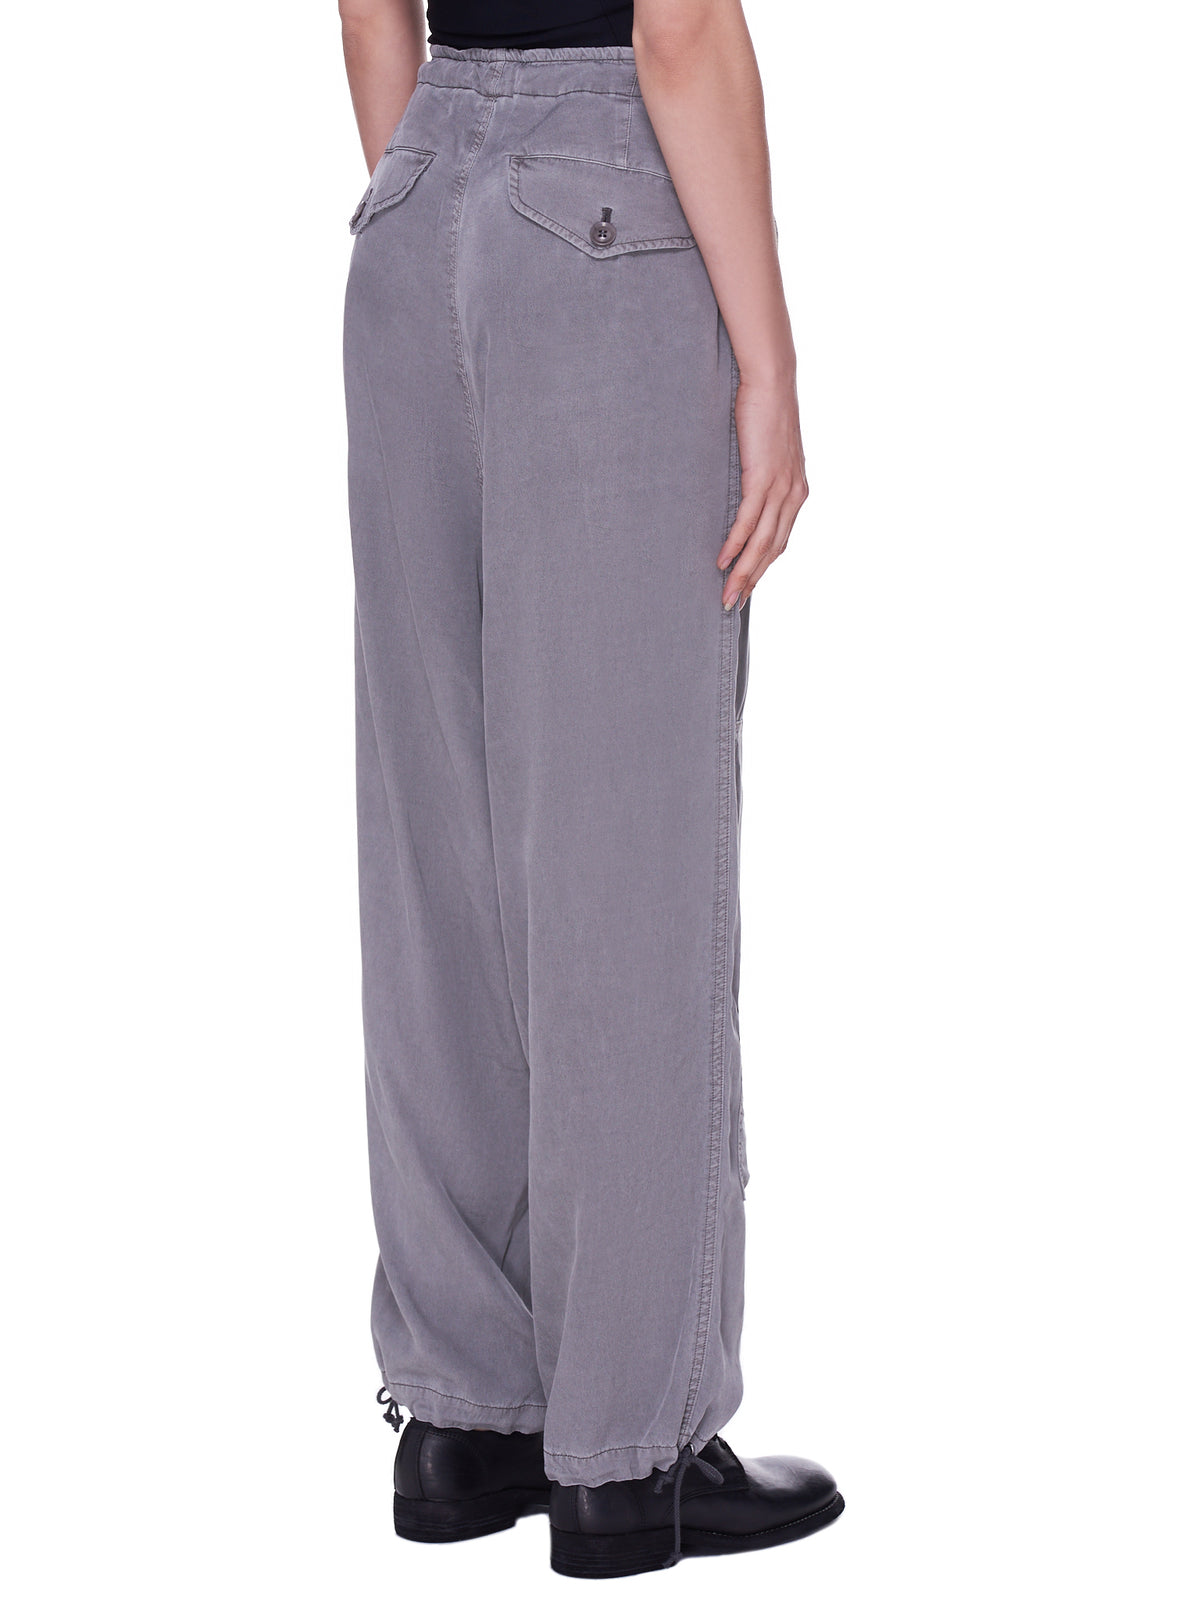 Kersey Pigment Dye Trousers (YD-P05-202-LIGHT-GREY)